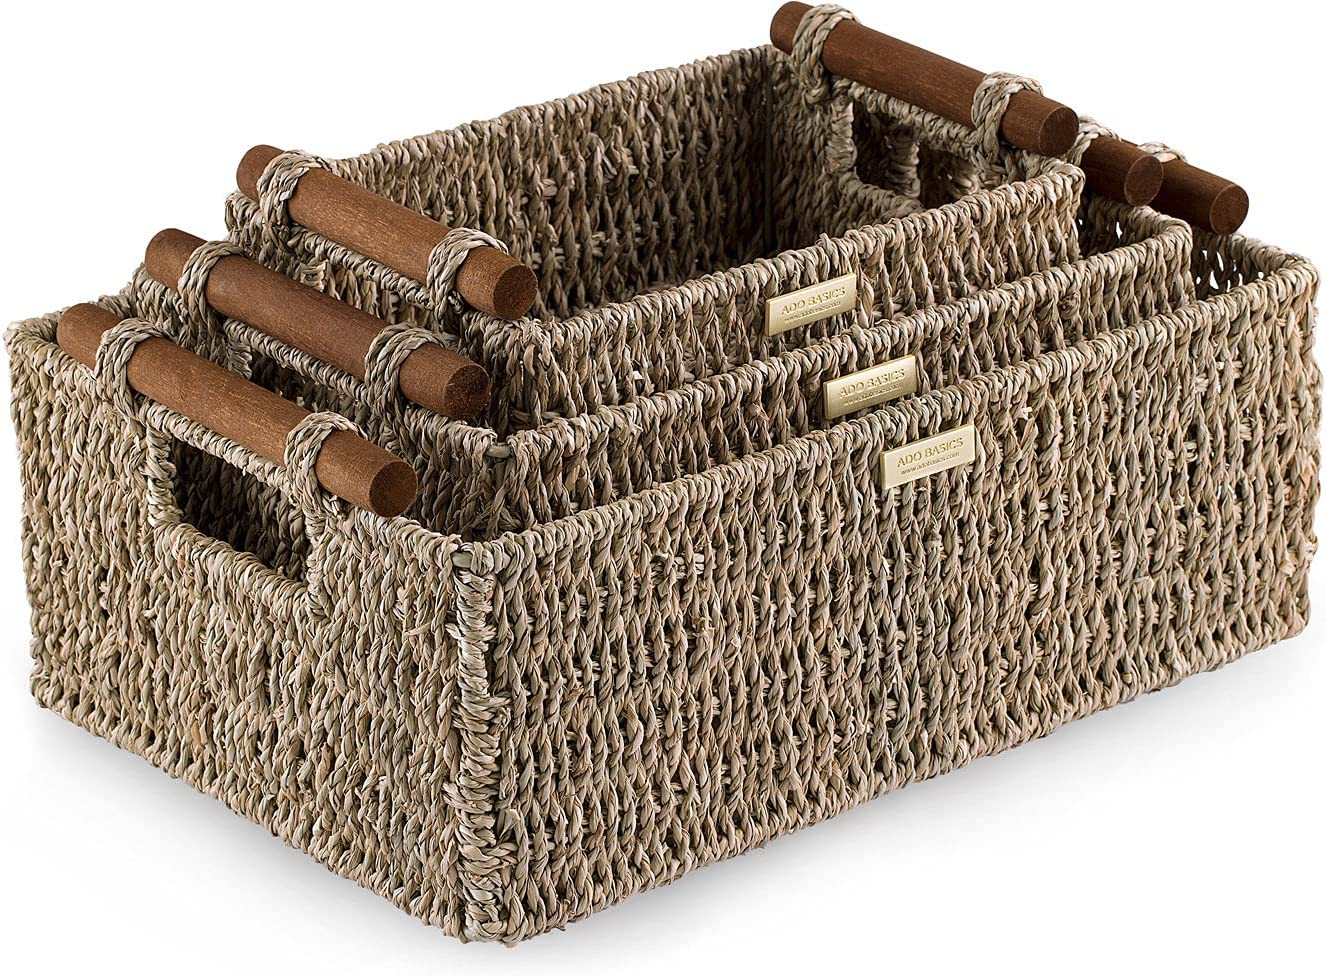 ADO Basics Wicker Basket with Stain Handles Baltimore Mall Sale SALE% OFF Resistant Se Wooden